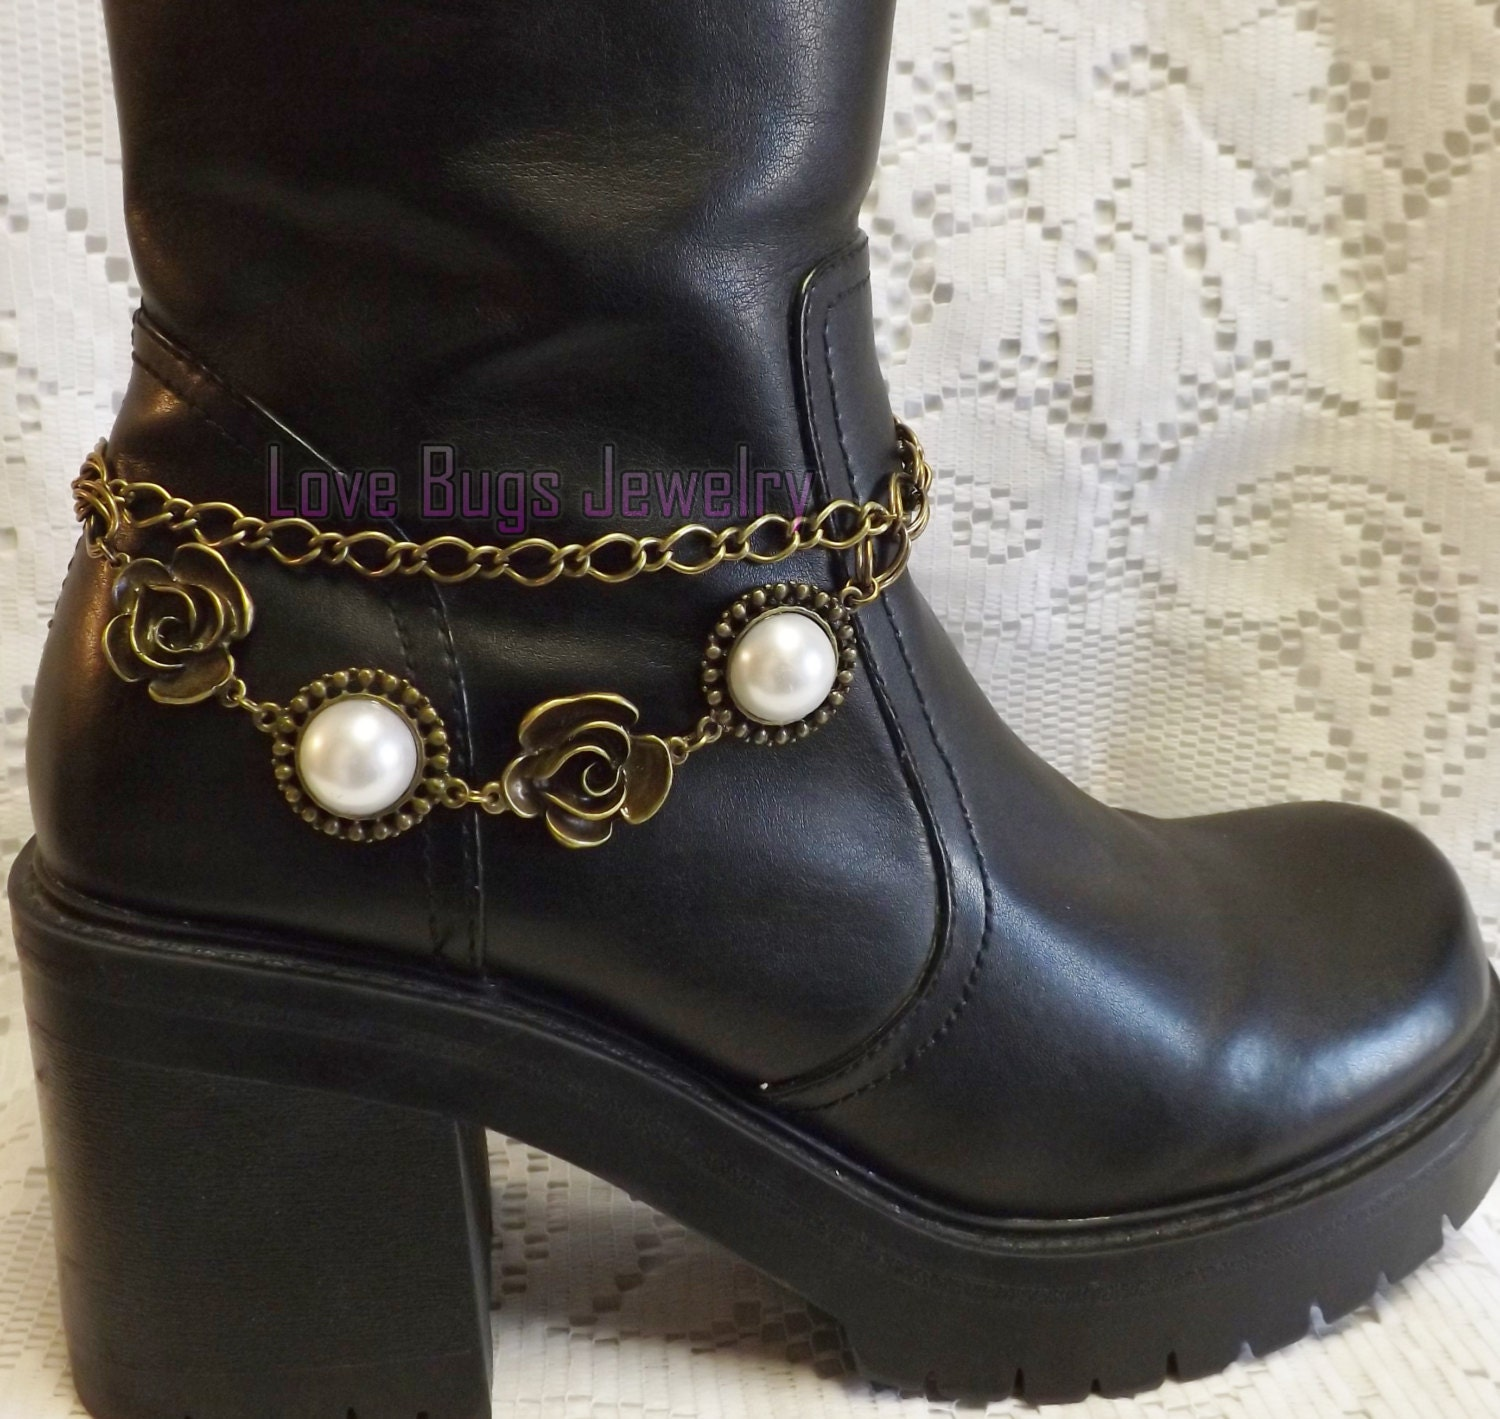 pearls and roses boot jewelry boot bracelet boot bling boot